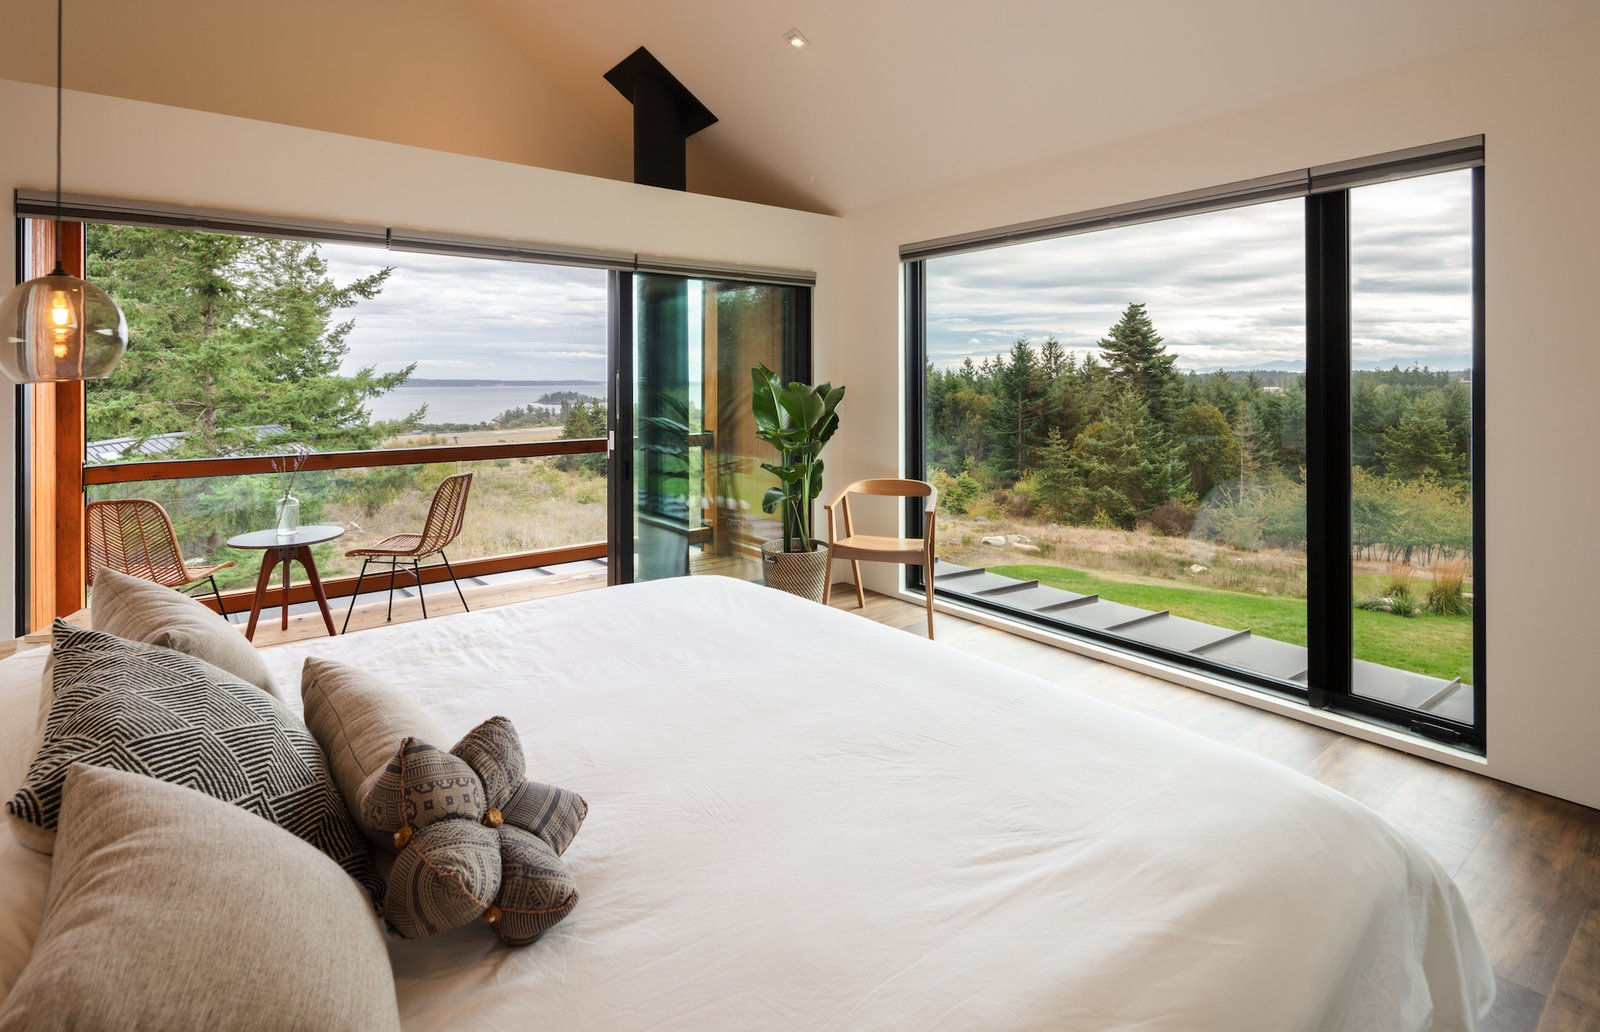 Master bedroom of Saltwater Farm main house by RAD LAB.